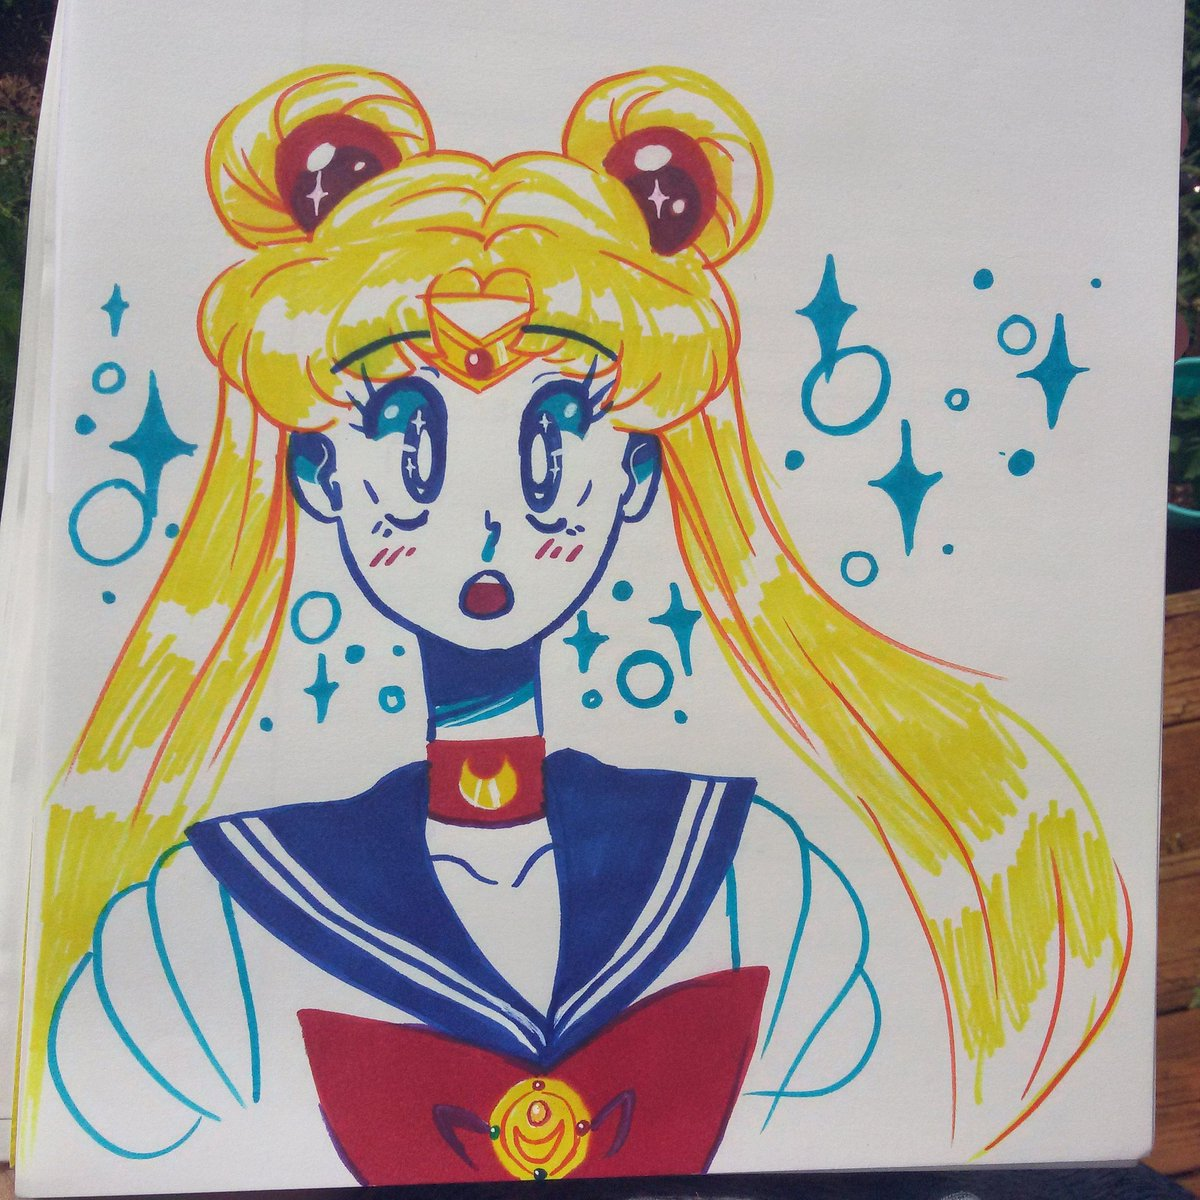 Found some sharpies so I did a doodle . #traditionalart #character #sharpie #doodle #sketch #art #drawing #sailormoon #usagi #fanart<br>http://pic.twitter.com/giJNOVcvdq